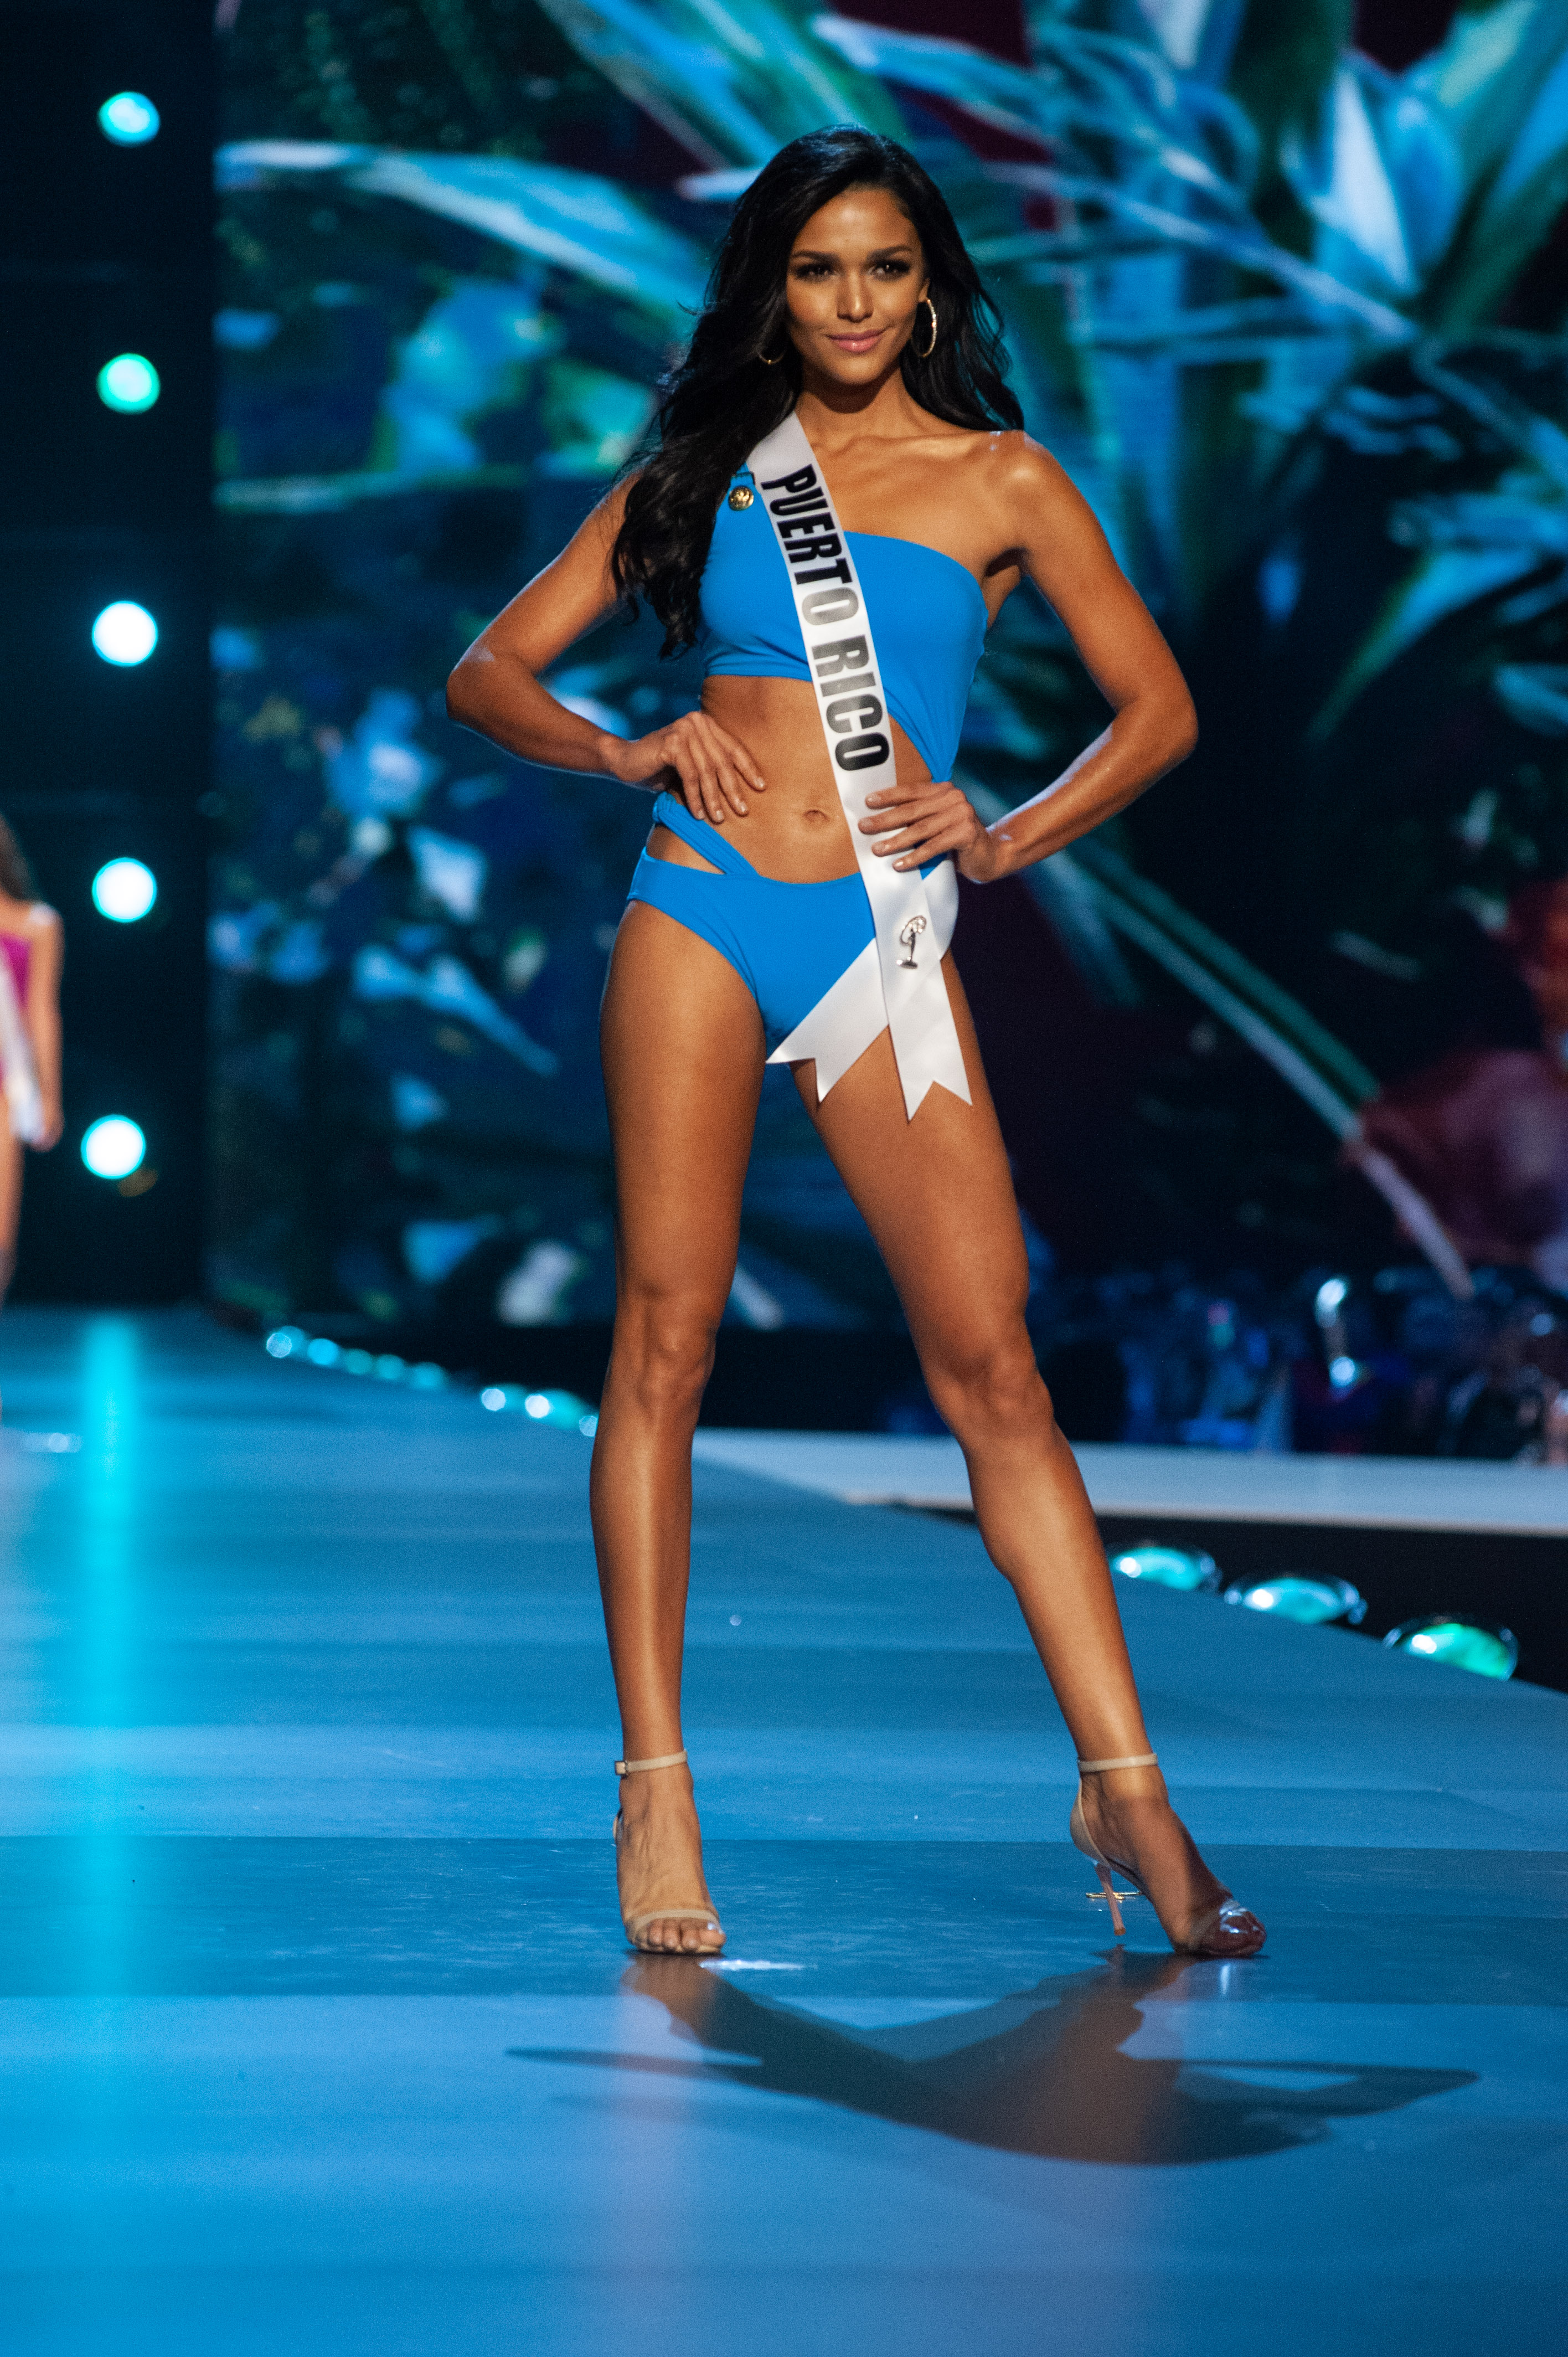 Miss Universe 2018: Catriona Gray's chances and other top picks